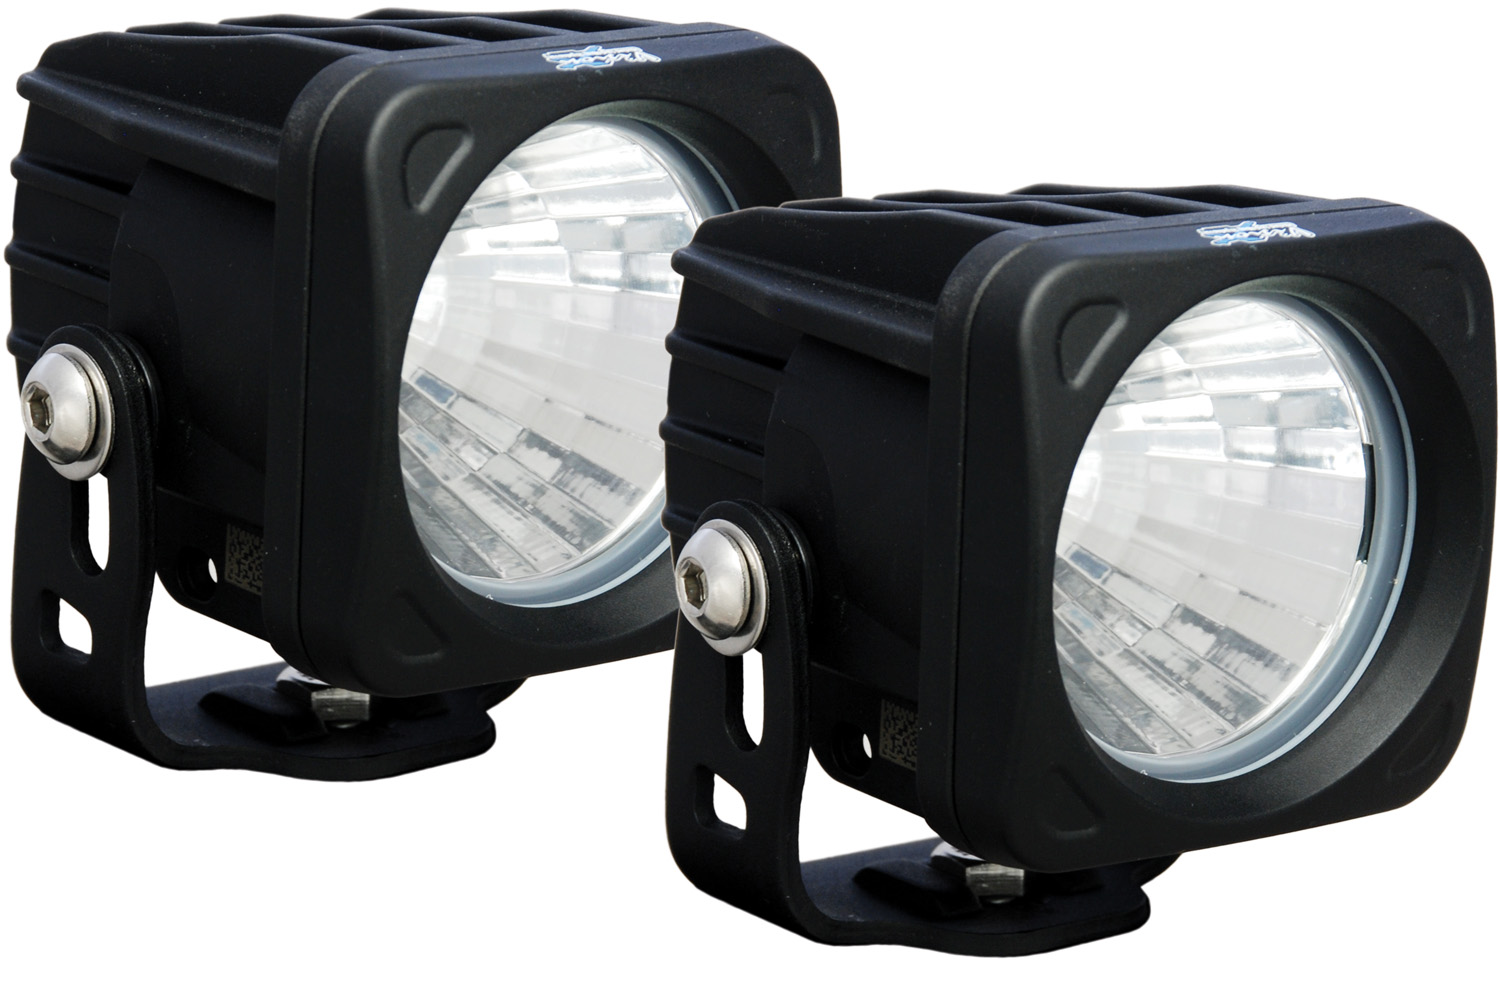 OPTIMUS SQUARE BLACK 1 10W LED 20° MEDIUM KIT OF 2 LIGHTS